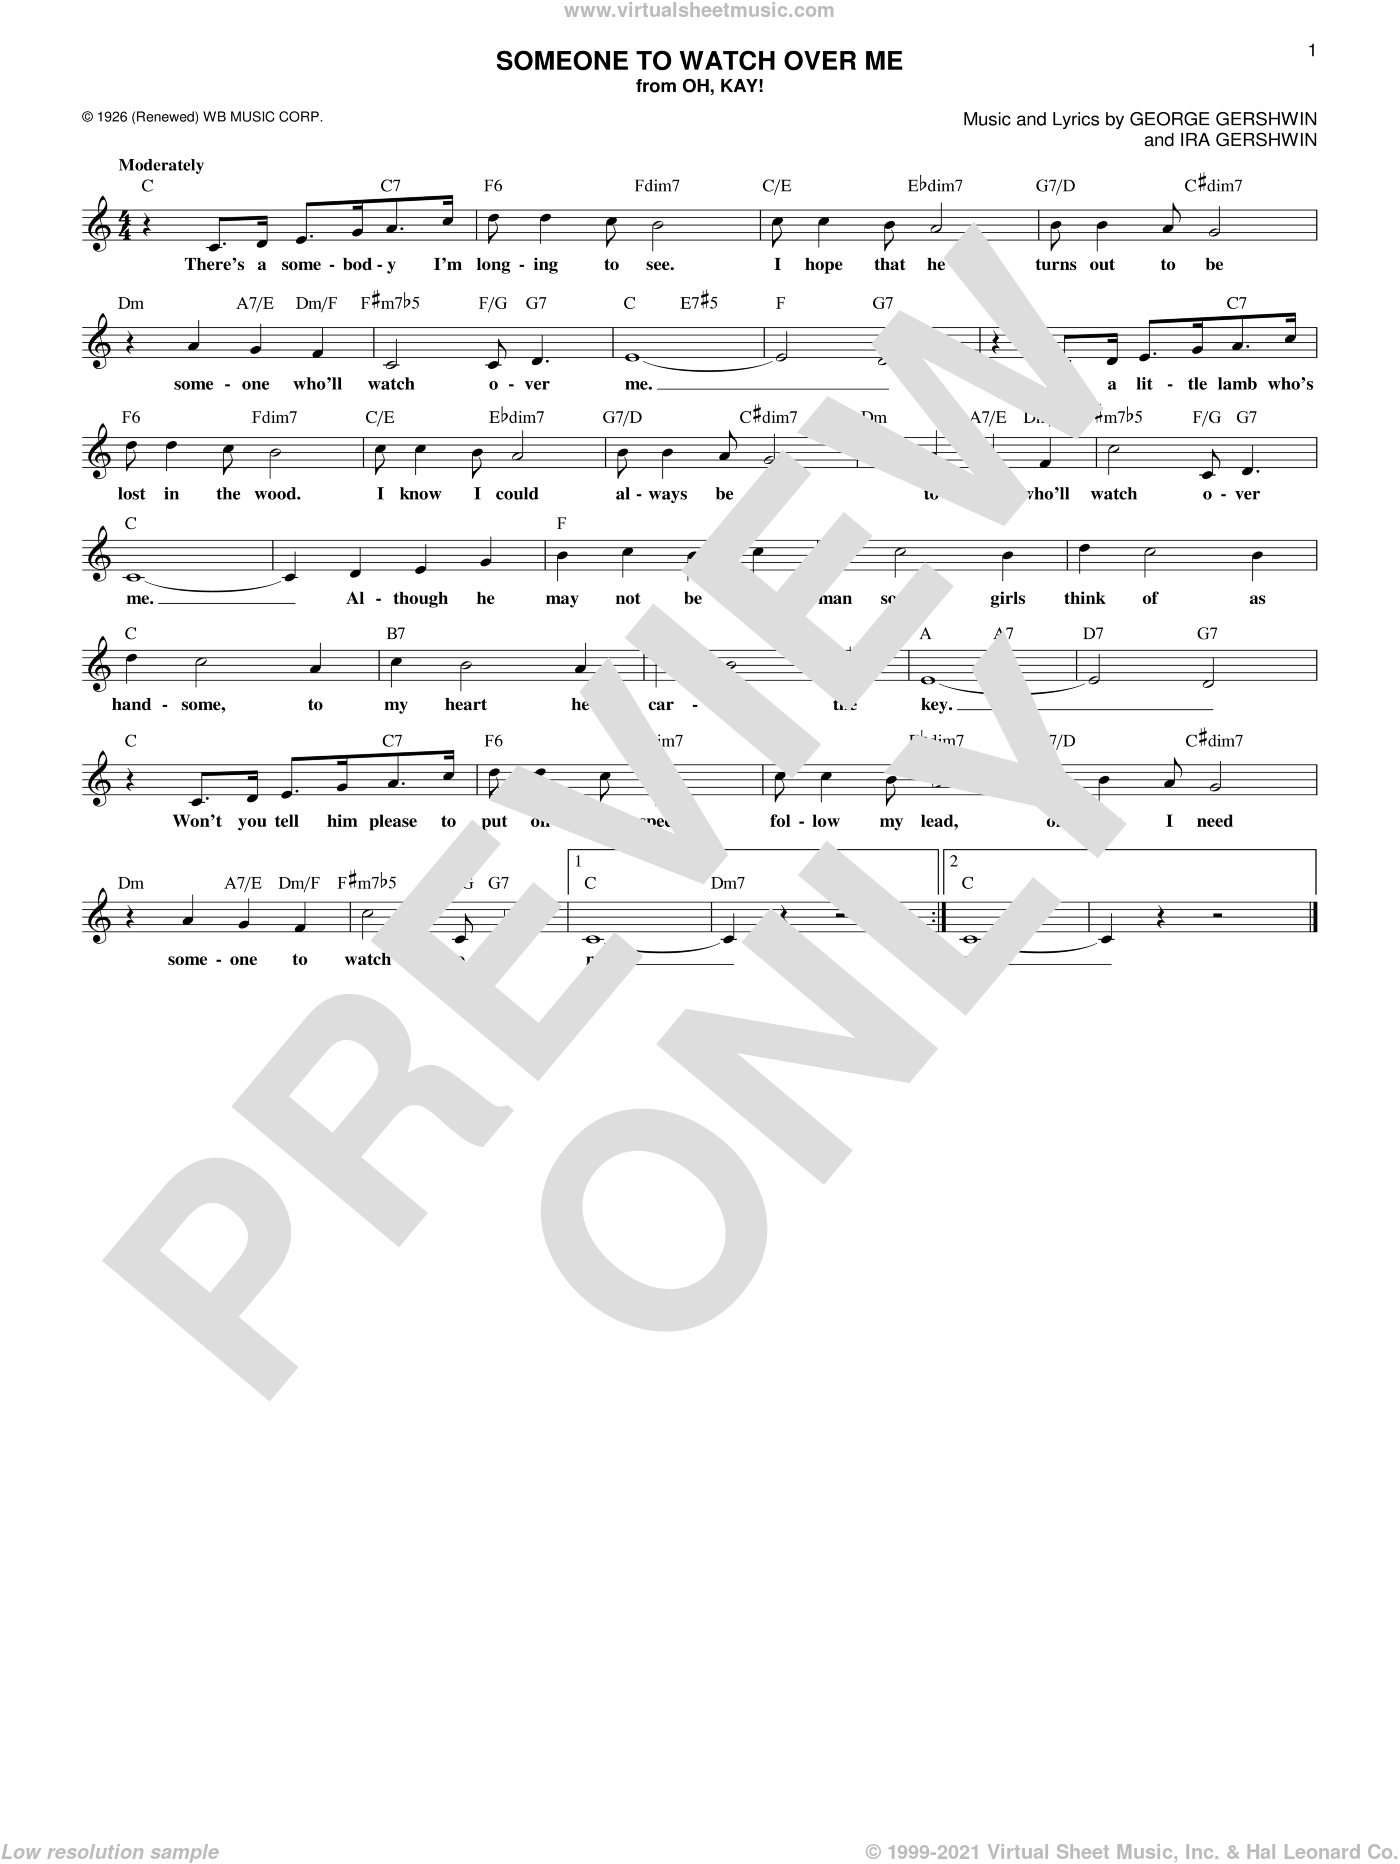 Someone To Watch Over Me sheet music for voice and other instruments (fake book) by George Gershwin and Ira Gershwin, intermediate skill level